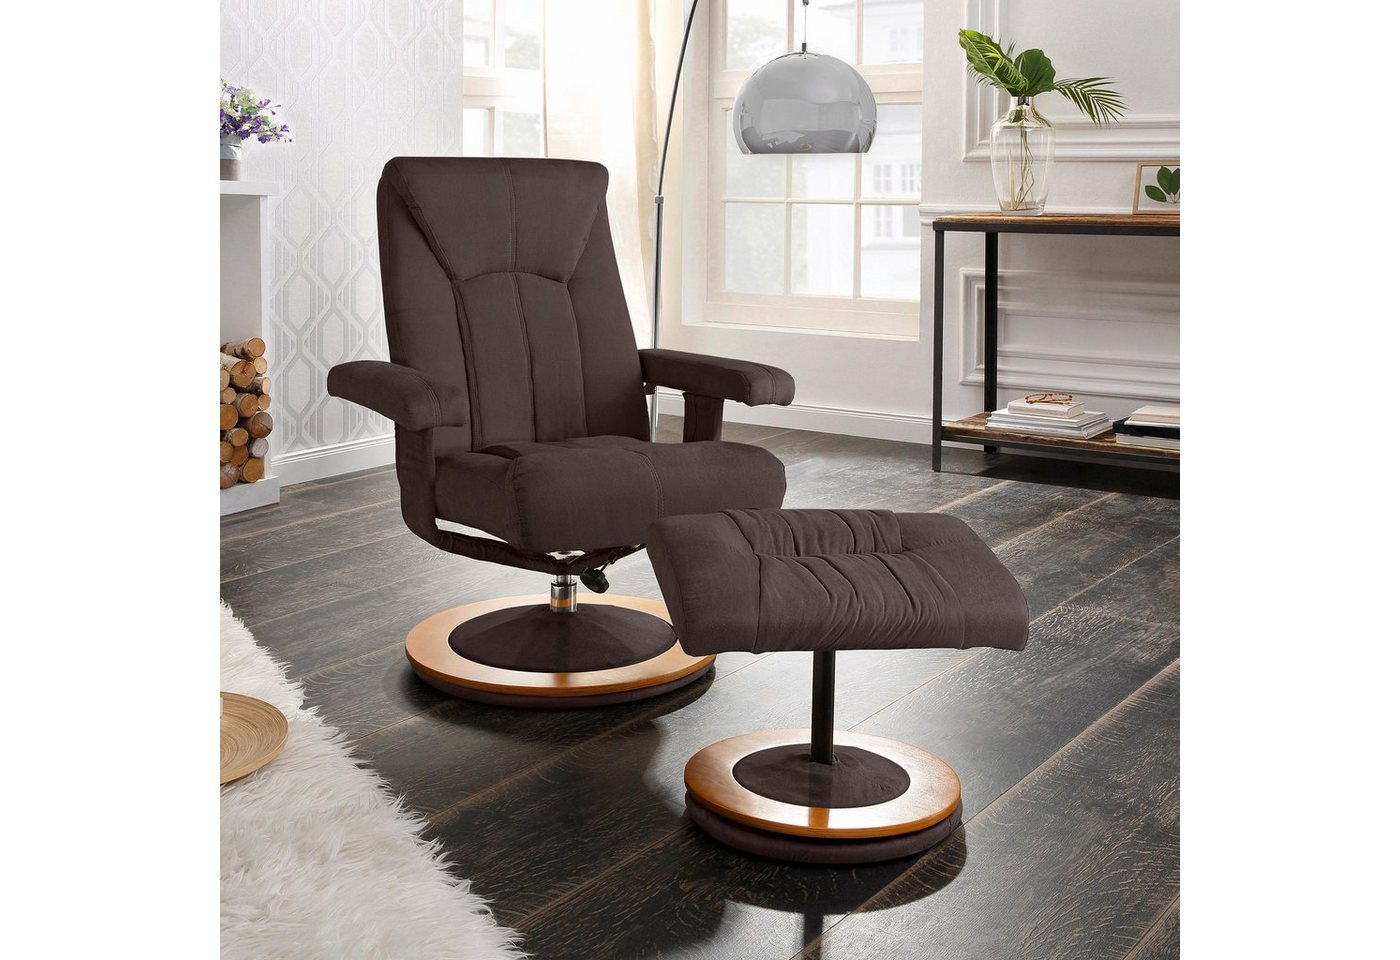 HOME AFFAIRE relaxfauteuil & hocker Colmar in 3 stofkwaliteiten